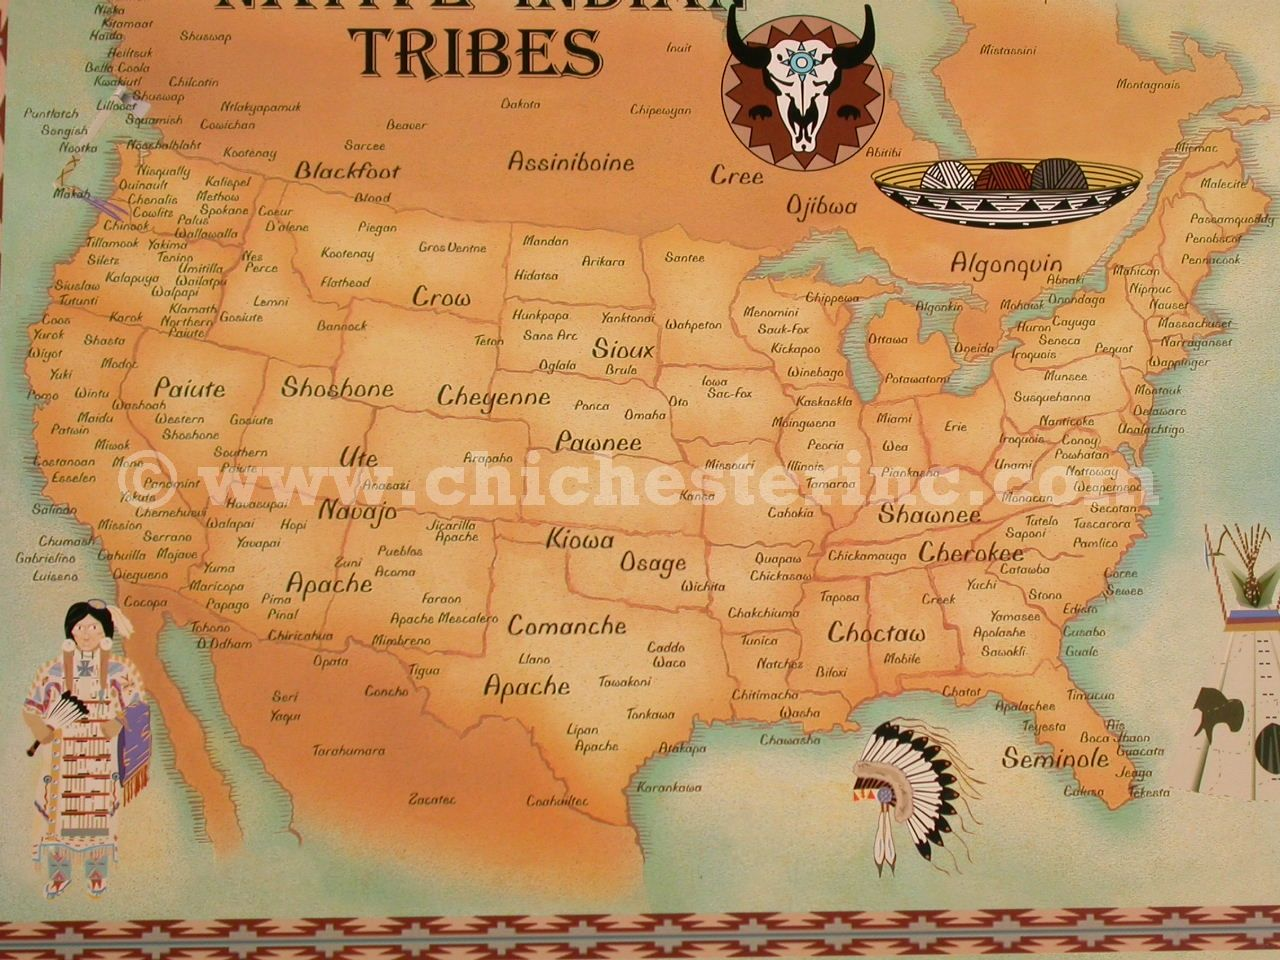 alphabetic listing of native american indian tribes of